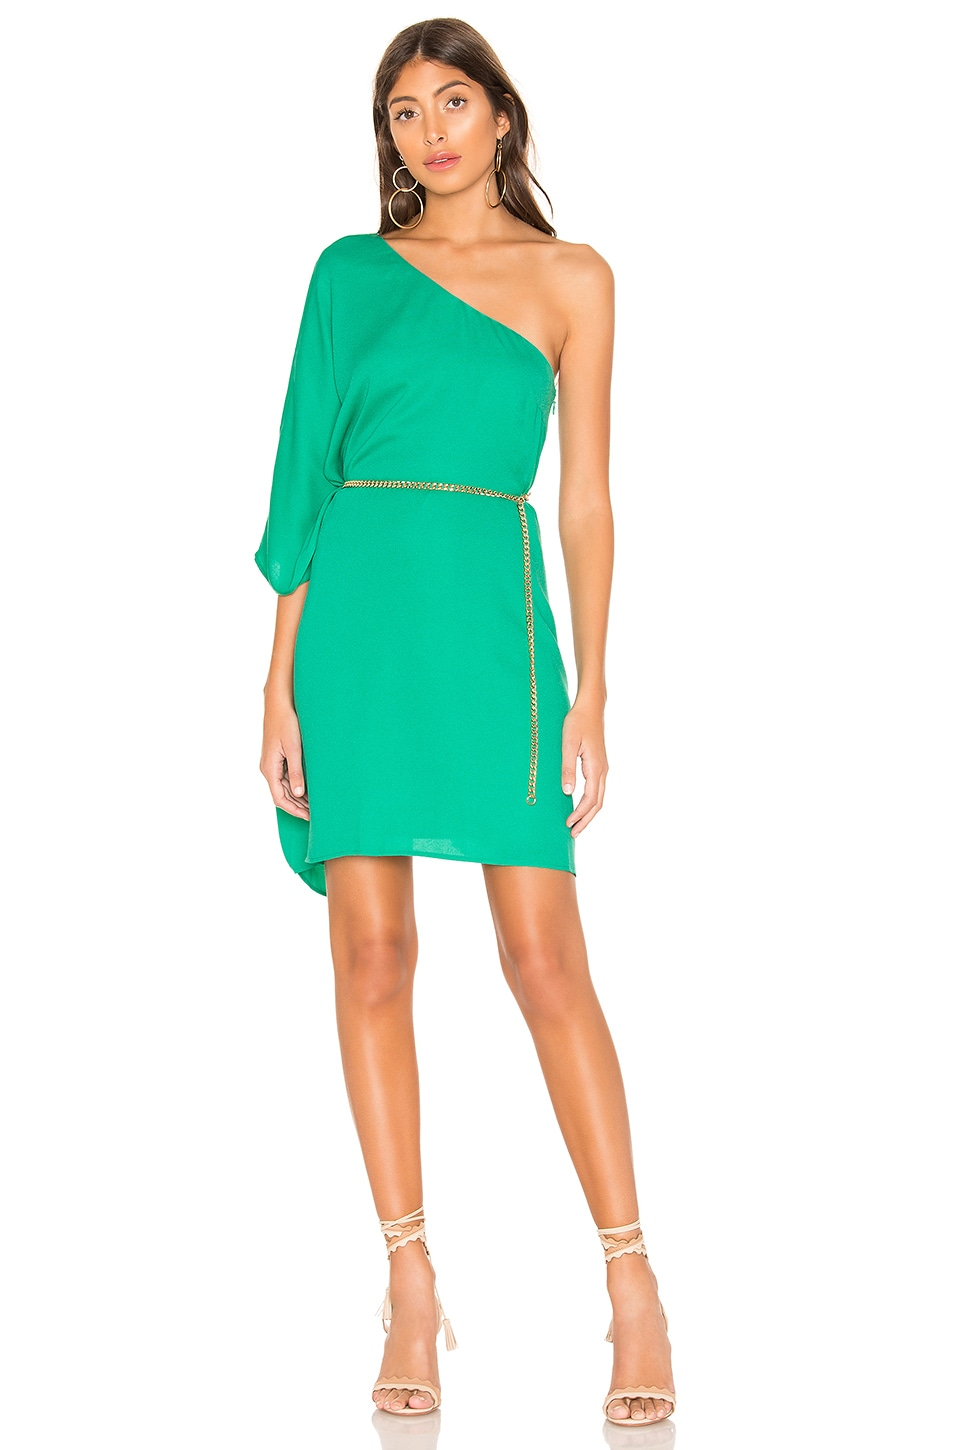 cupcakes and cashmere Deliz Dress in Leaf Green